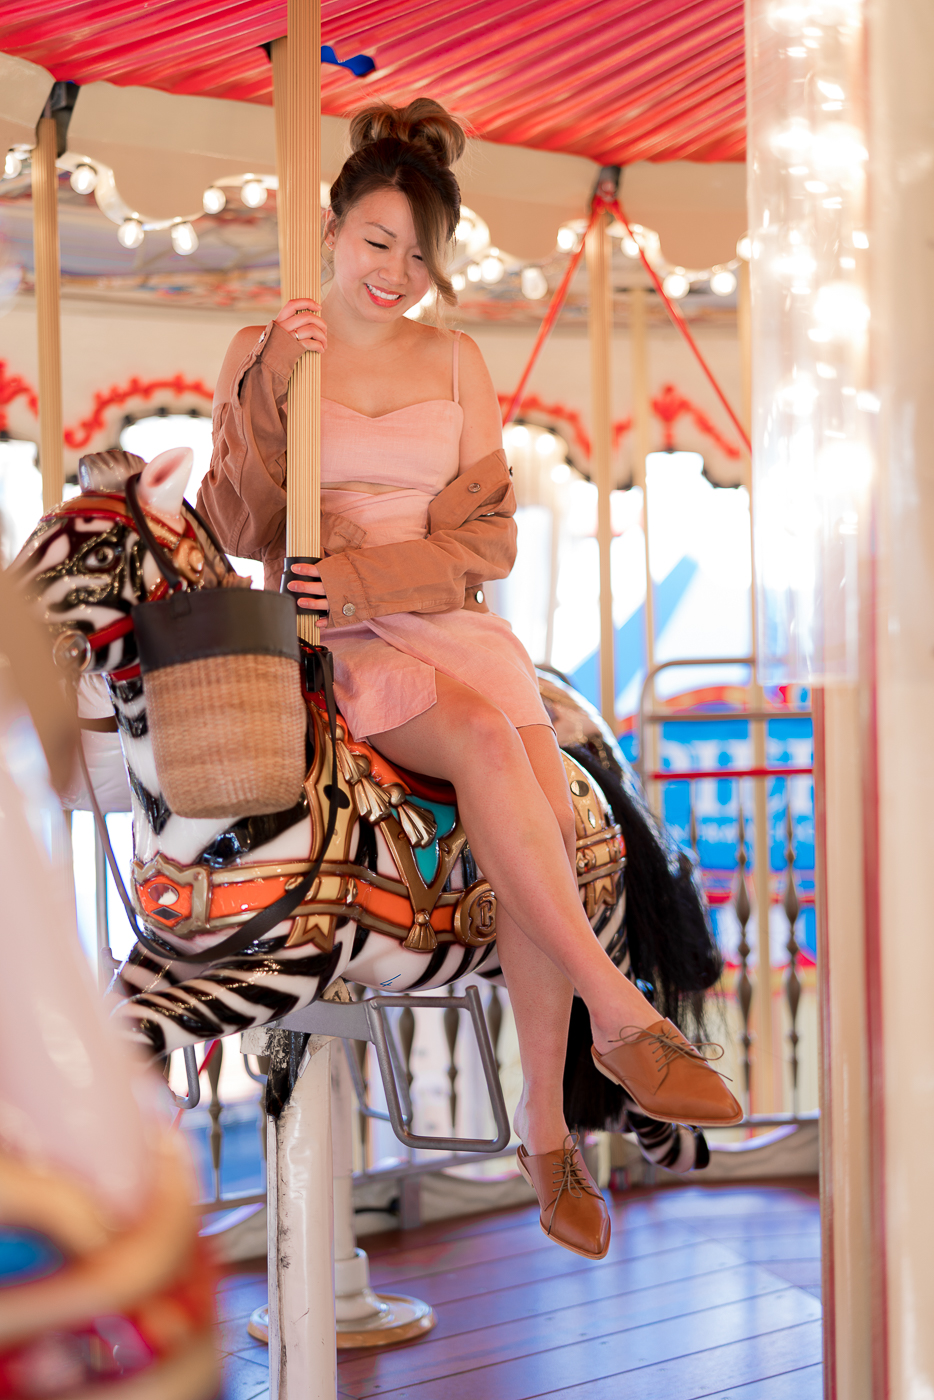 Pier 39 Carousel Shoot | The Chic Diary